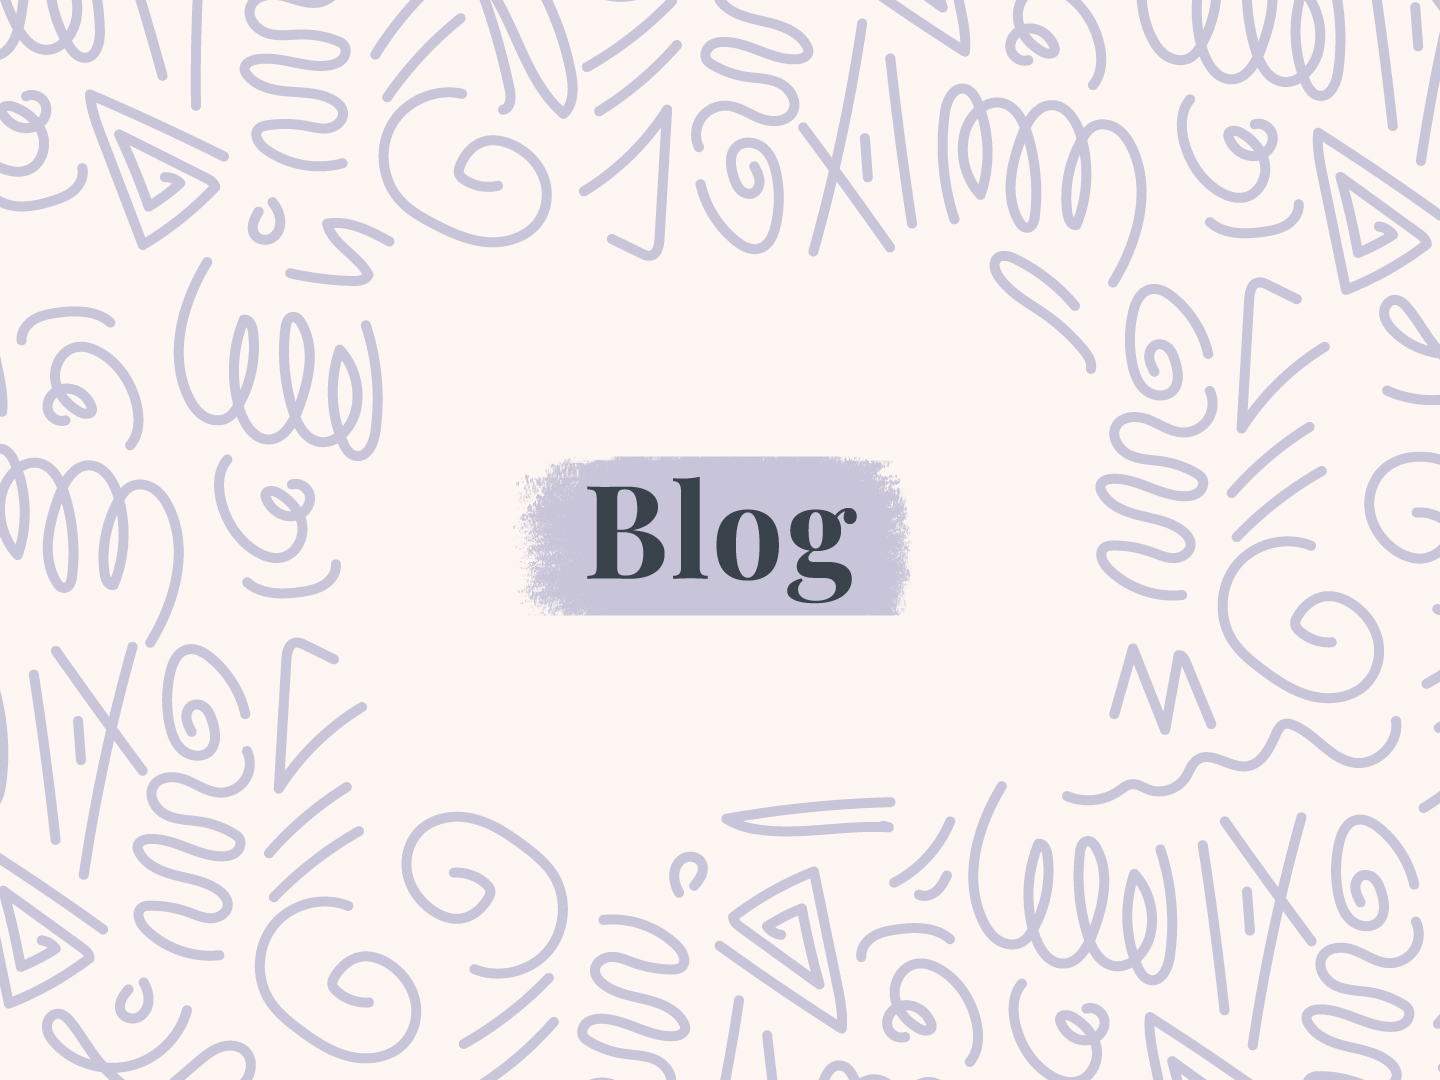 blog with a paint stroke behind and squiggly patterns drawn around it